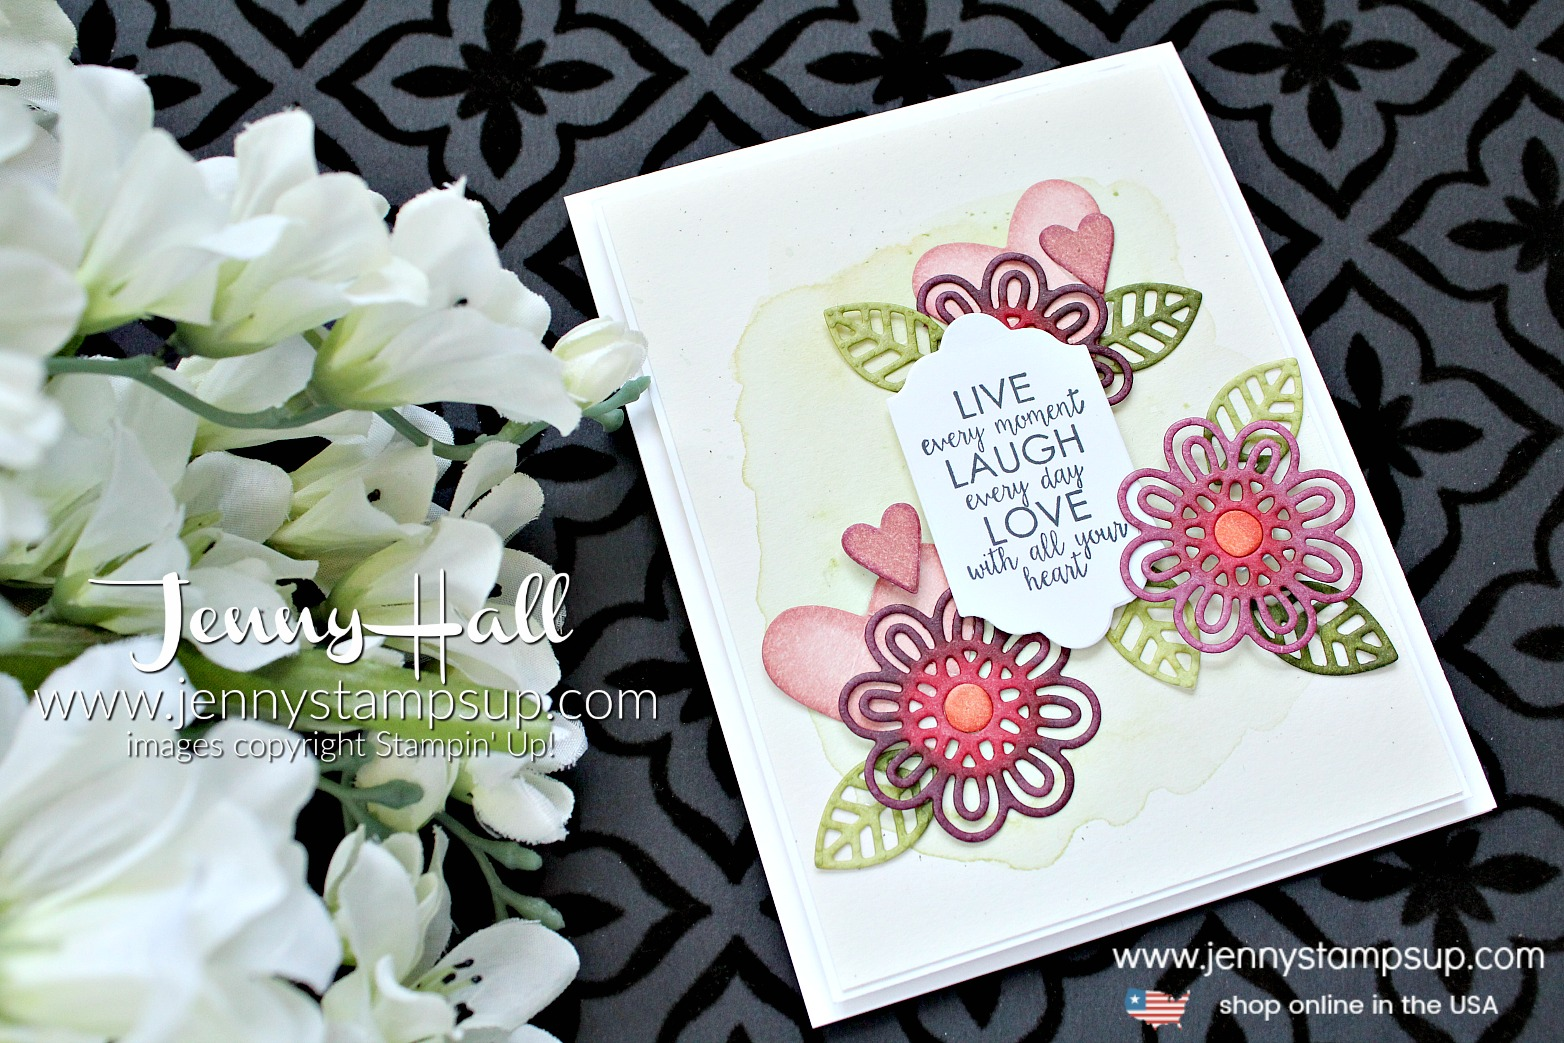 April OSAT Blog Hop Coloring die cuts card by Jenny Hall at www.jennystampsup.com for #cardmaking #stamping #stampinup #watercolorpainting #crafts #papercrafts #cardmakingchallenge #livelaughlove #jennyhall #jennystampsup #jennyhalldesign #videotutorial #youtuber #craftyyoutuber #kidfriendly #christiancraft